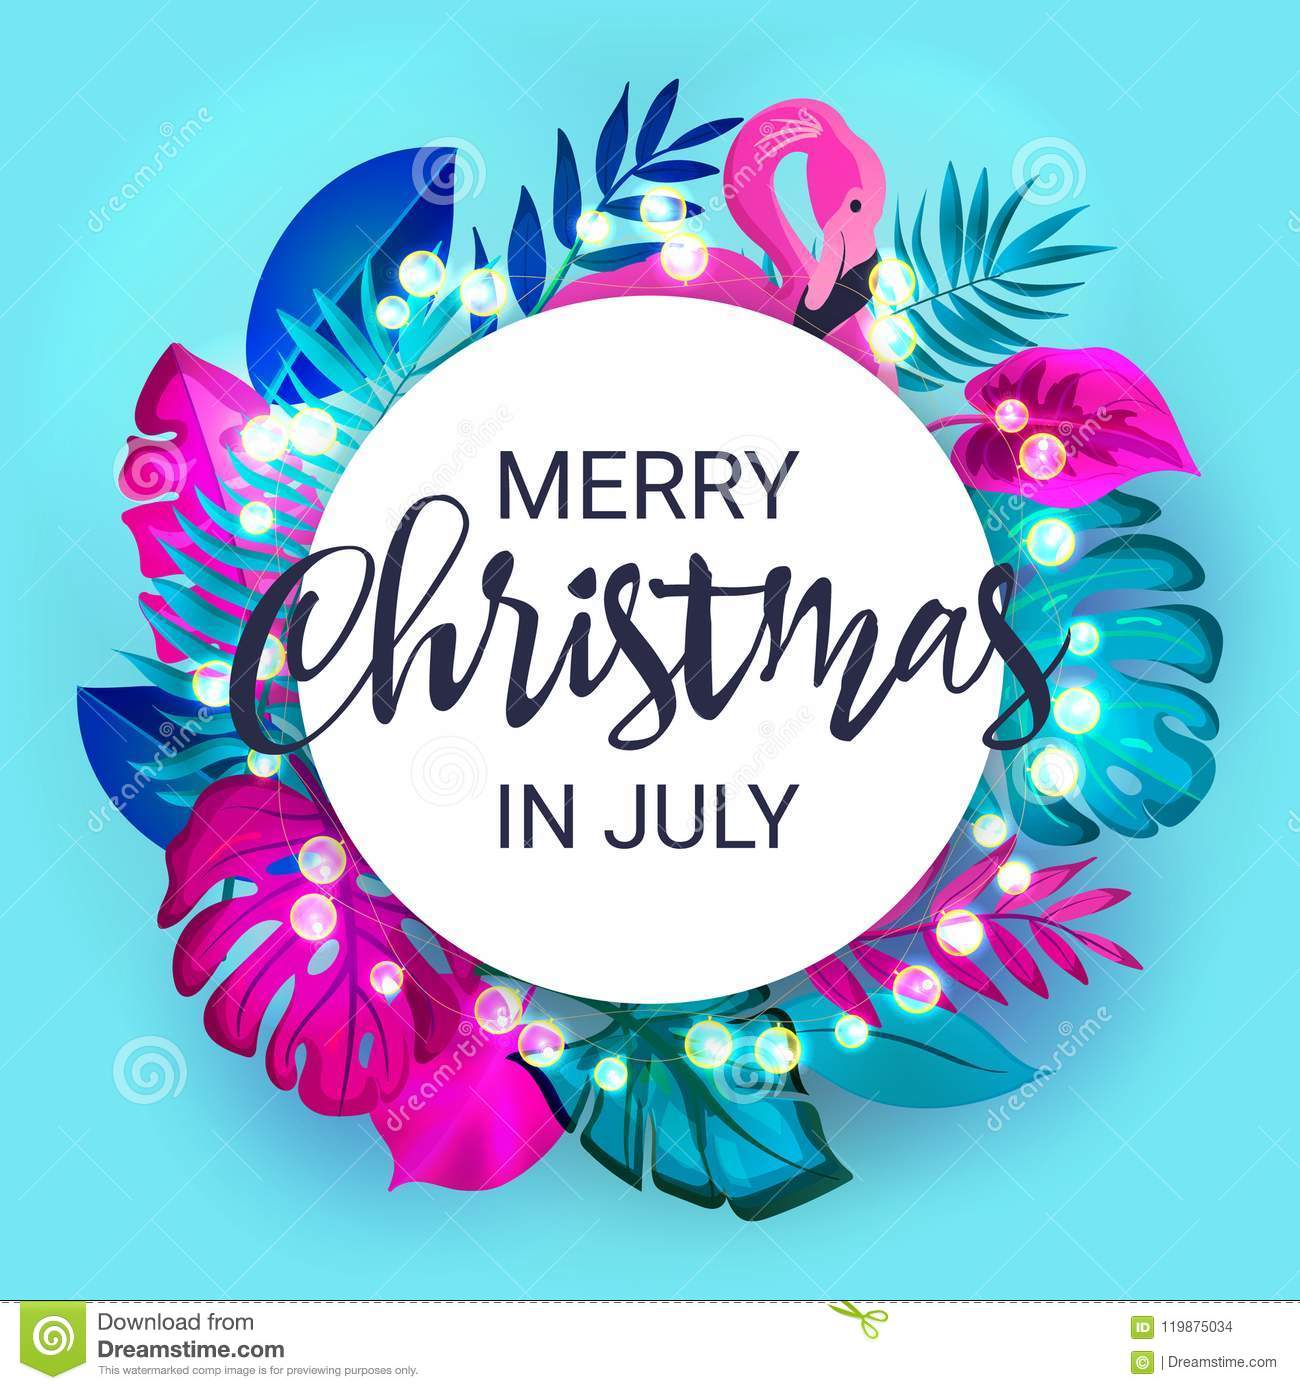 Christmas In July Images Free.Christmas In July Sale Marketing Template Eps 10 Vector